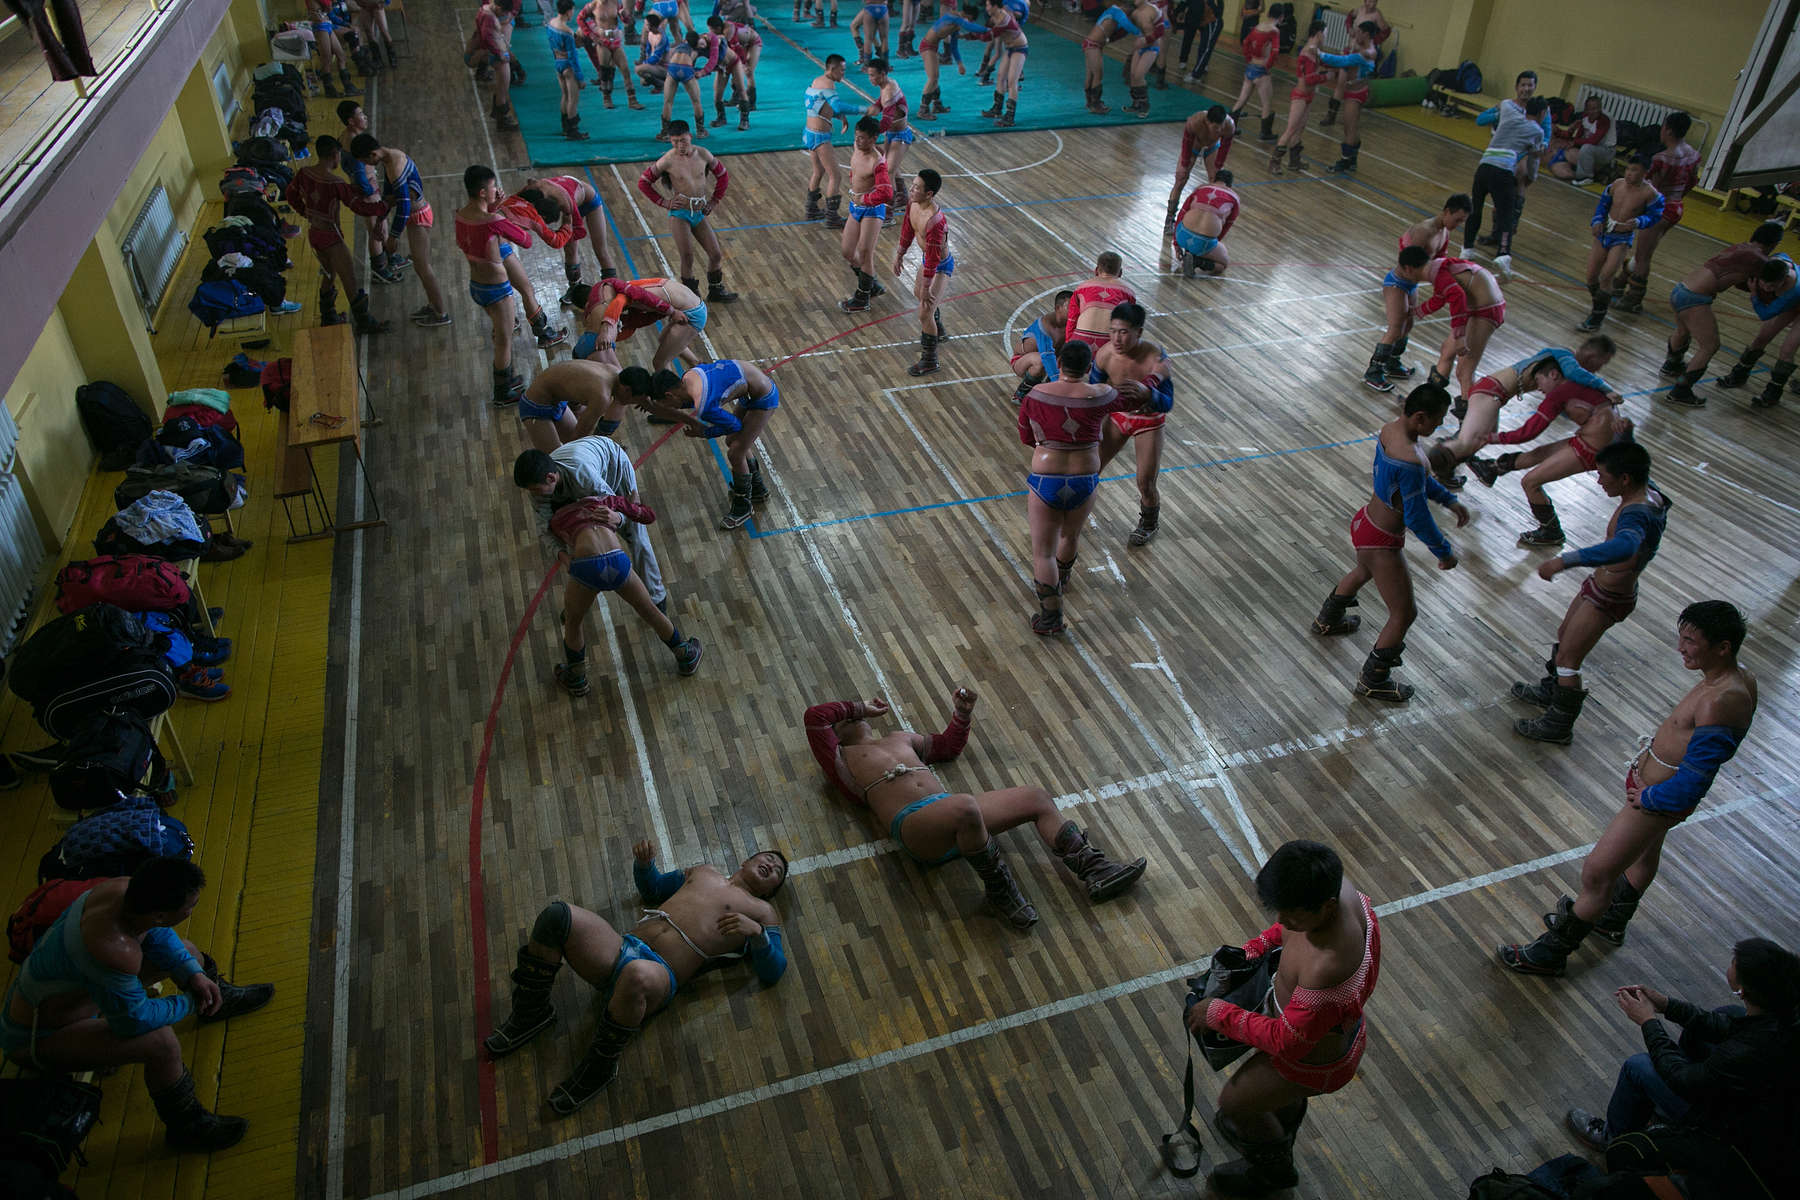 Hundreds of Mongolian wrestlers practice at a local wrestling school in Ulan Bataar. Mongolia is the most sparsely populated country on earth, but its people are some of the strongest. In Mongolia, wrestling is the most important sport that runs deep into its culture along with horsemanship and archery. Going back for hundreds of years, history books tell the story of how Genghis Khan considered wrestling to be an important way to keep his army combat ready while back in the Qing Dynasty (1646–1911) regular wrestling events were held. In Mongolia's capitol city, Ulan Batar is home to many wrestling schools where almost daily you can see dozens of young men sweating in crowded gyms while in schools both girls and boys are taught some wrestling techniques.While my photo story gives a real behind the scenes look, it is unusual for a woman to document this macho scene of sweat and endurance.